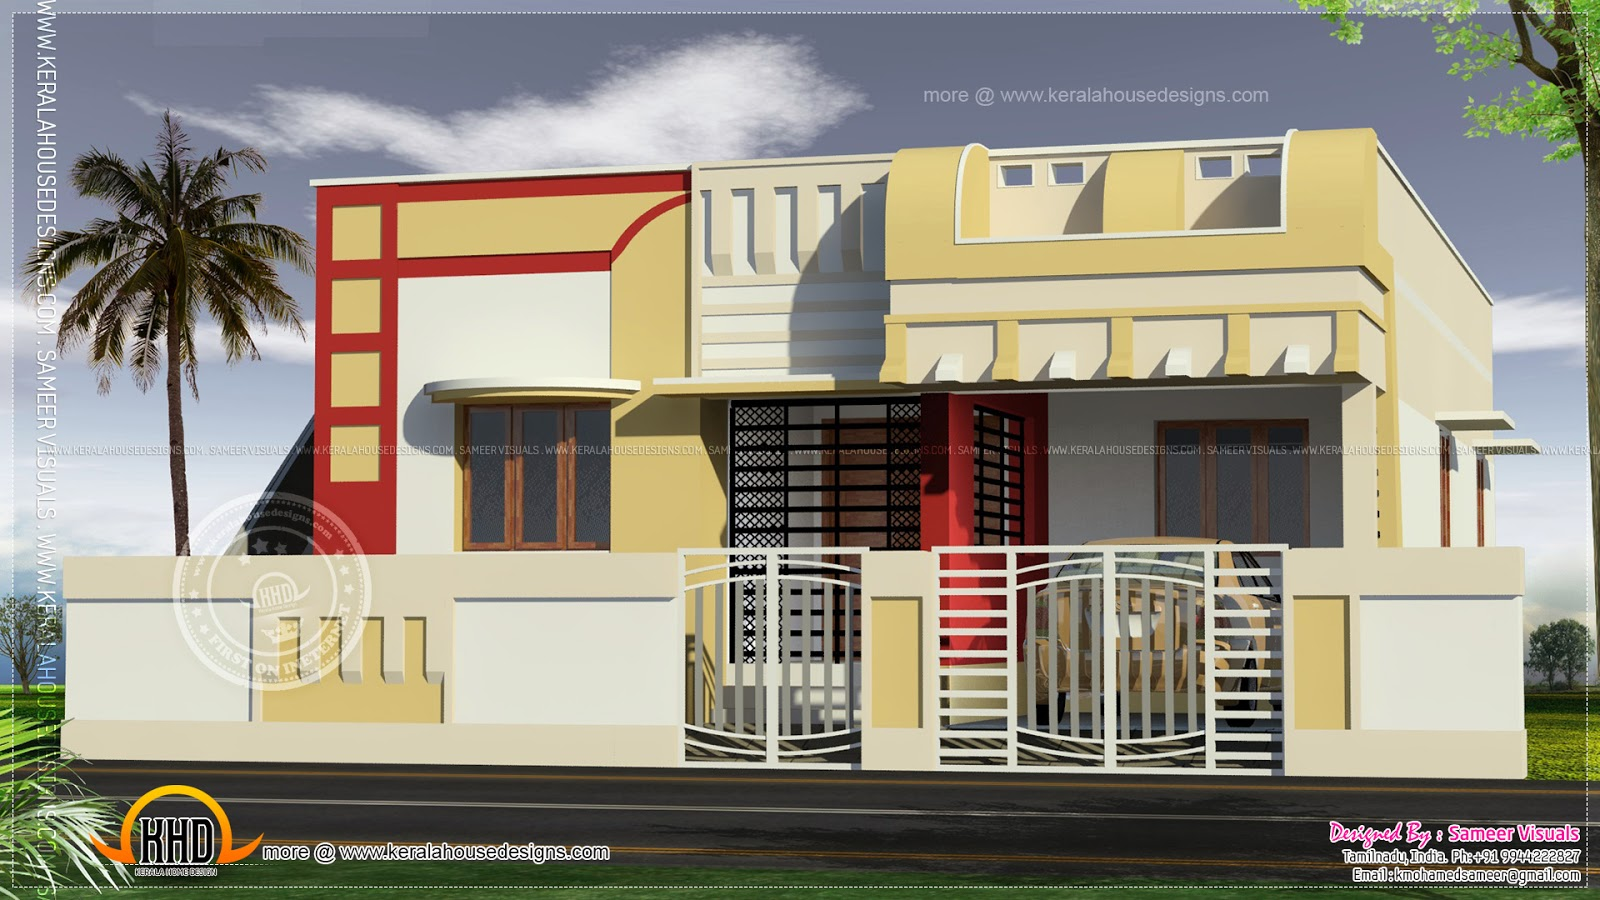 Small south indian home design kerala home design and for Indian house models for construction